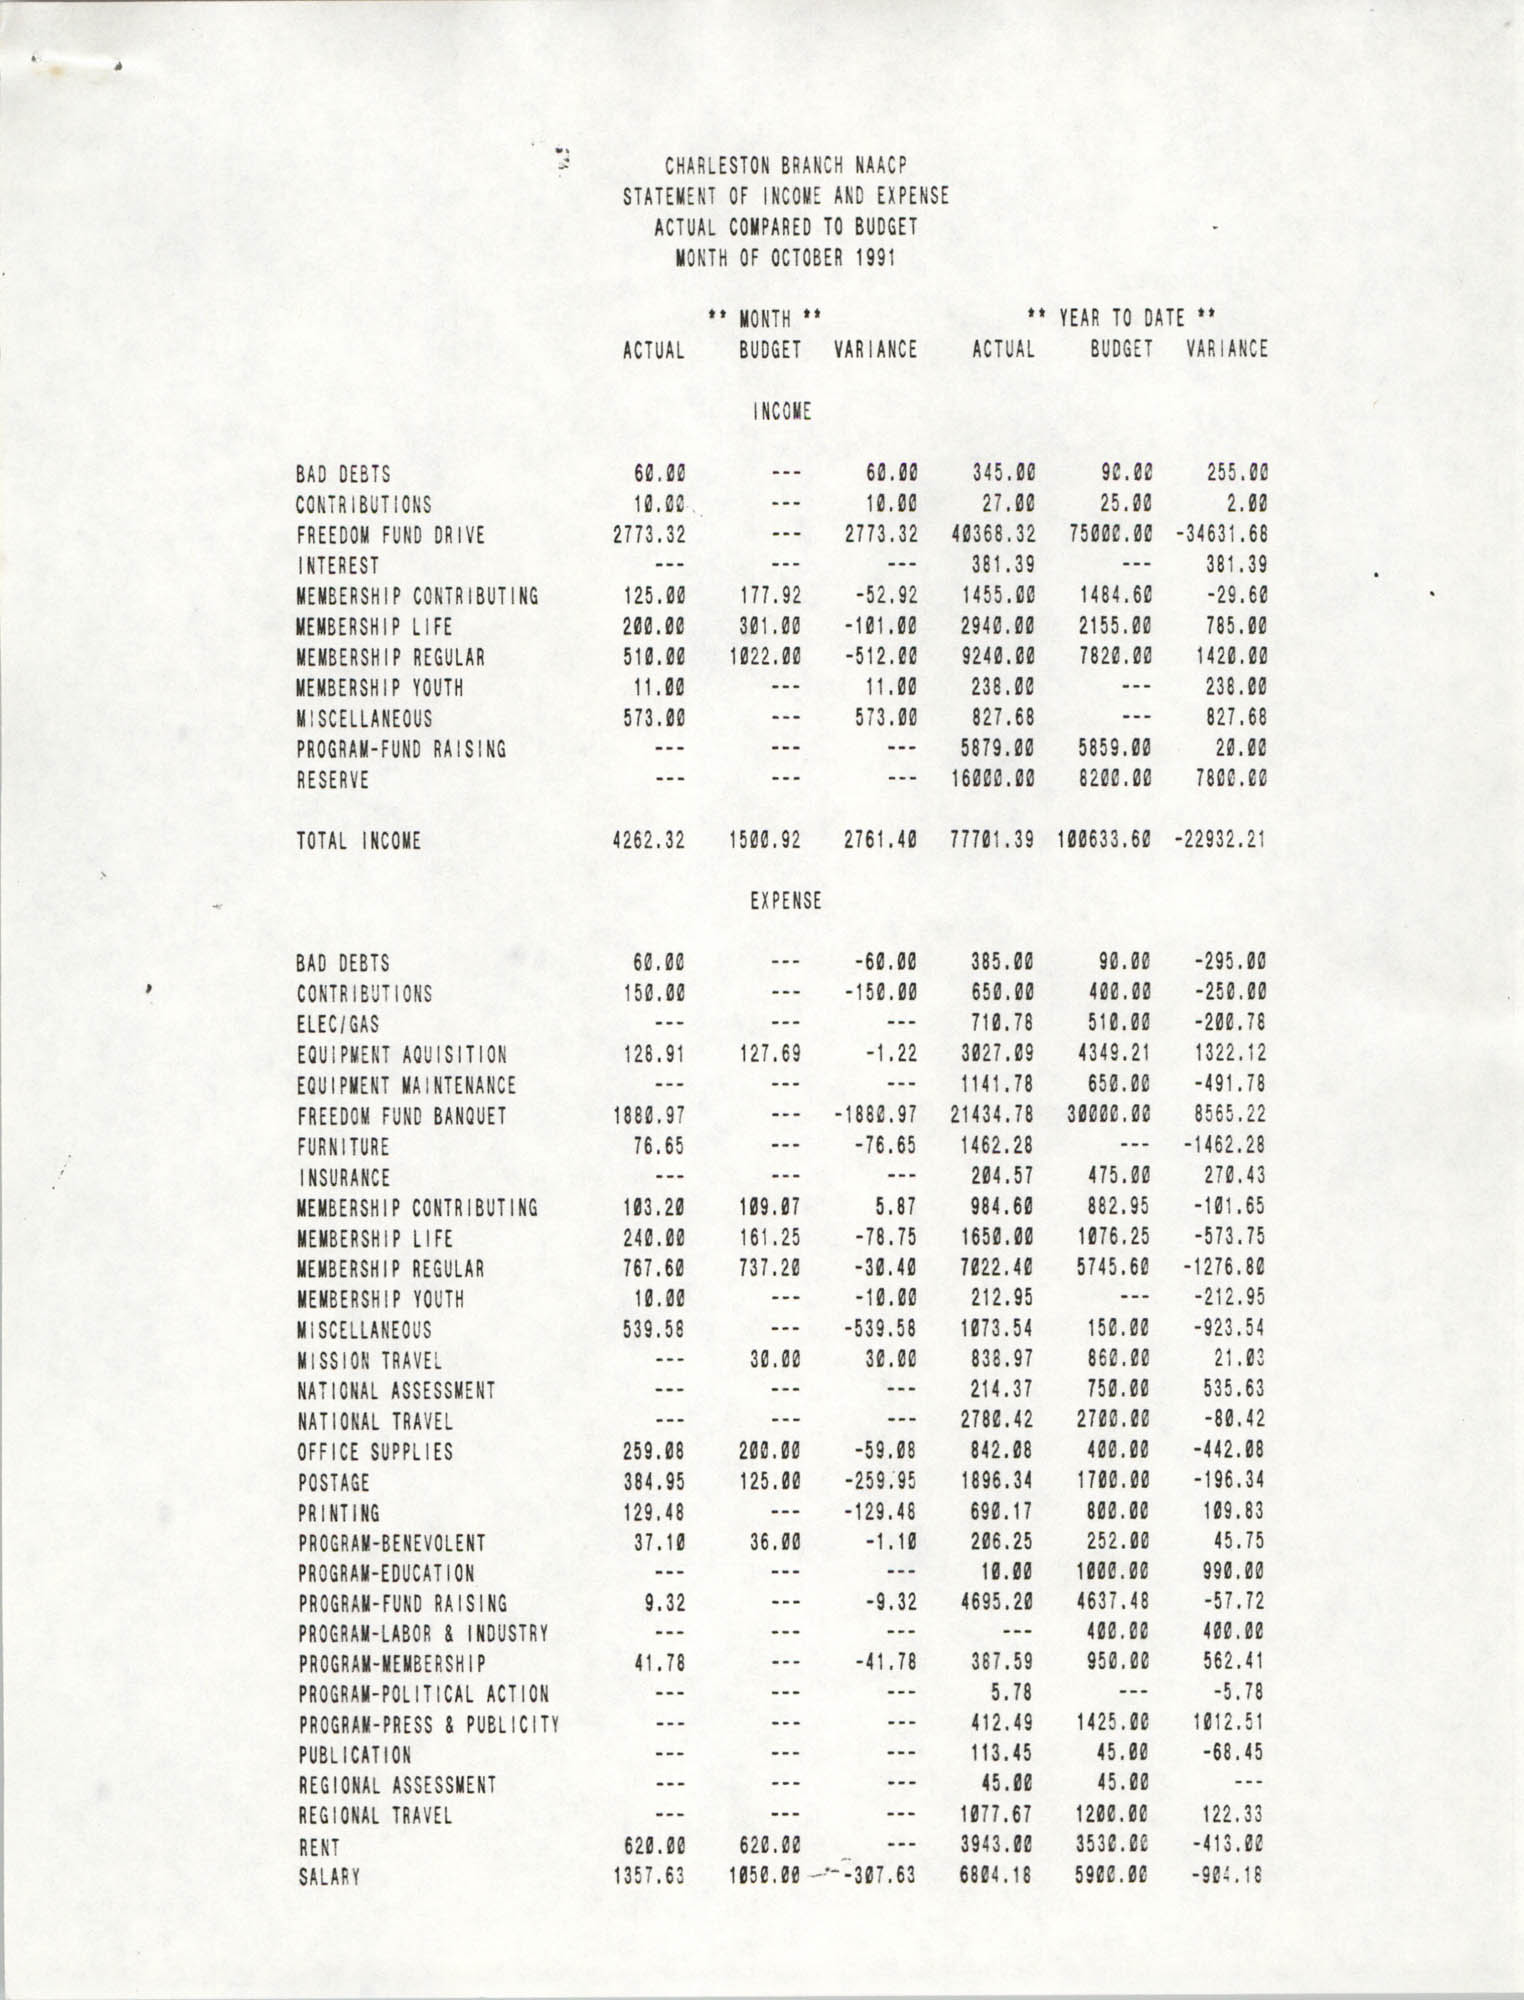 Charleston Branch of the NAACP Statement of Income and Expense, October 1991, Page 1